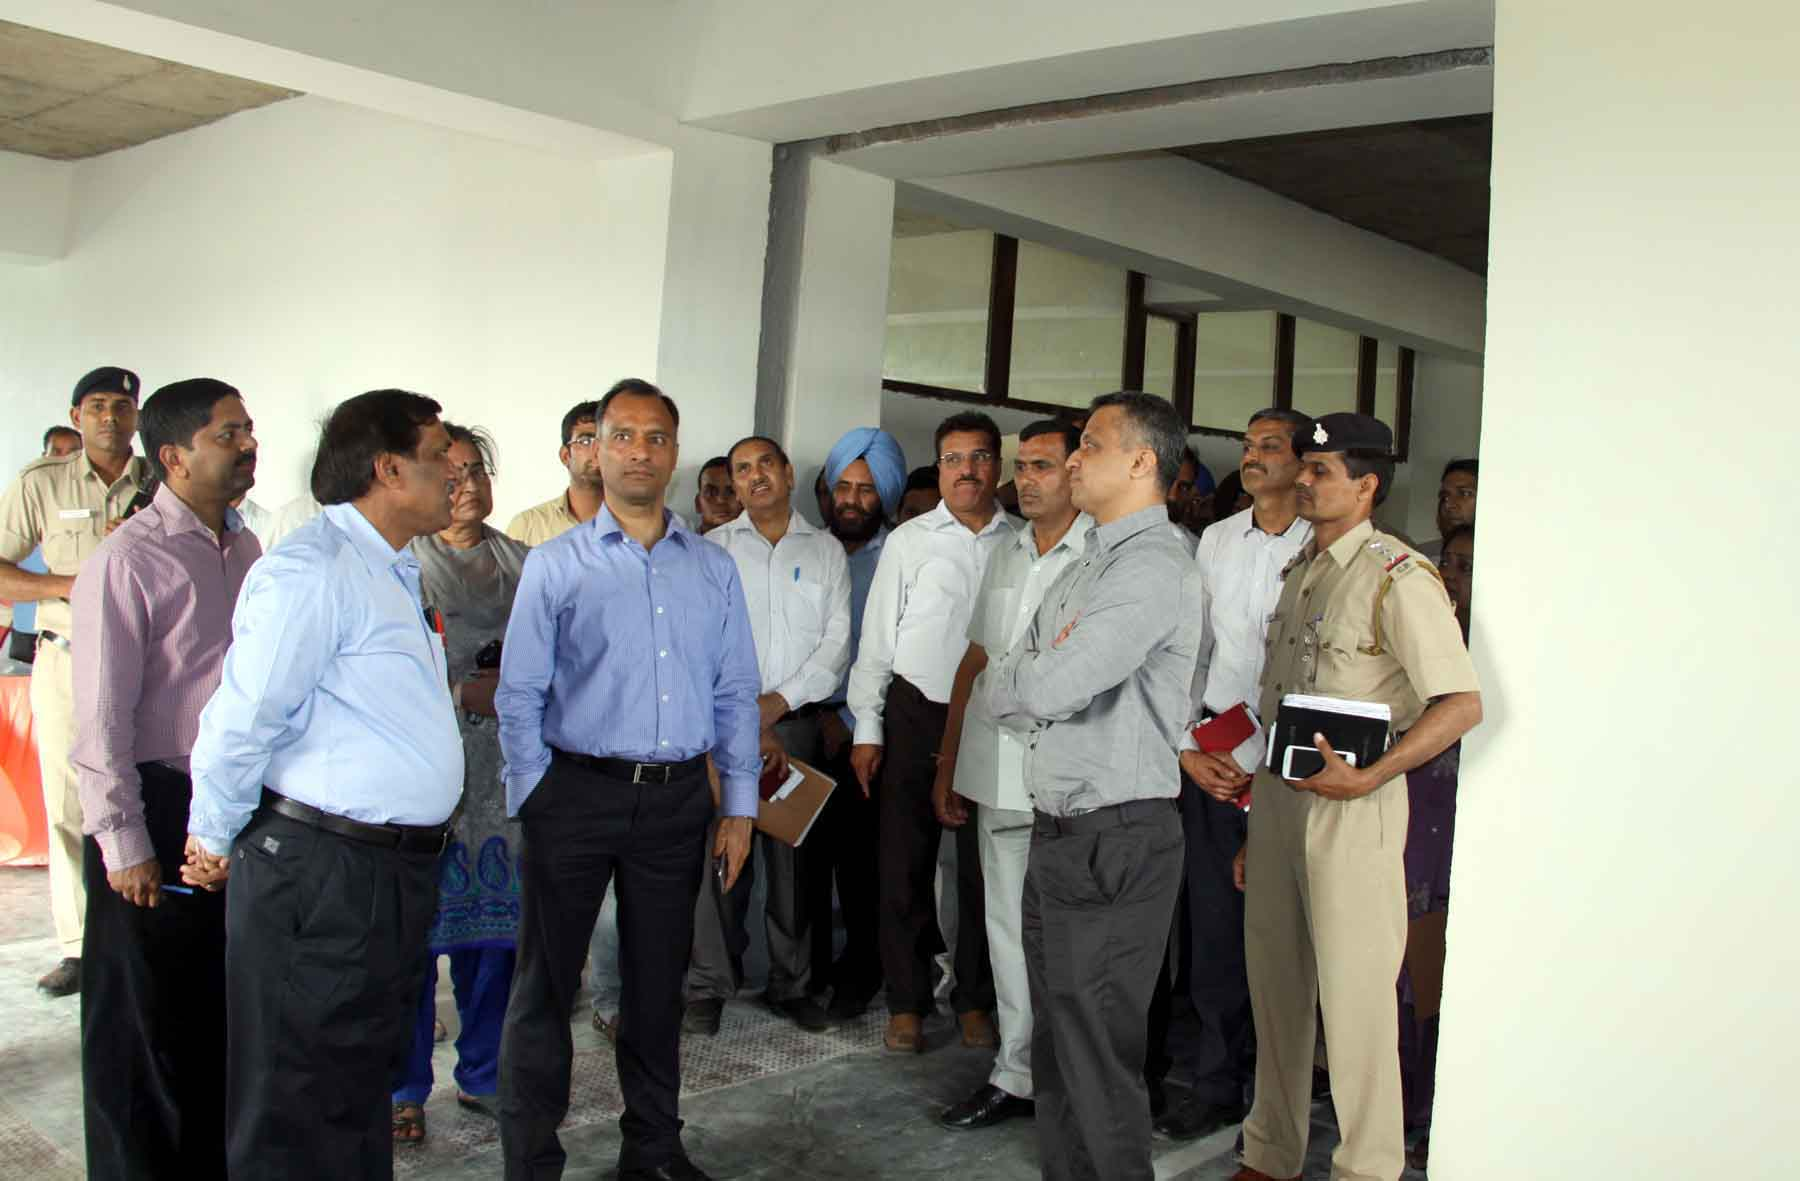 The Adviser to the Administrator, UT, Chandigarh, Mr. Vijay Dev alongwith senior officers of Chandigarh Administration reviewing the progress of ongoing construction work at Govt. College of Commerce and Business Administration, Sector-50, Chandigarh on Friday, April 17, 2015.